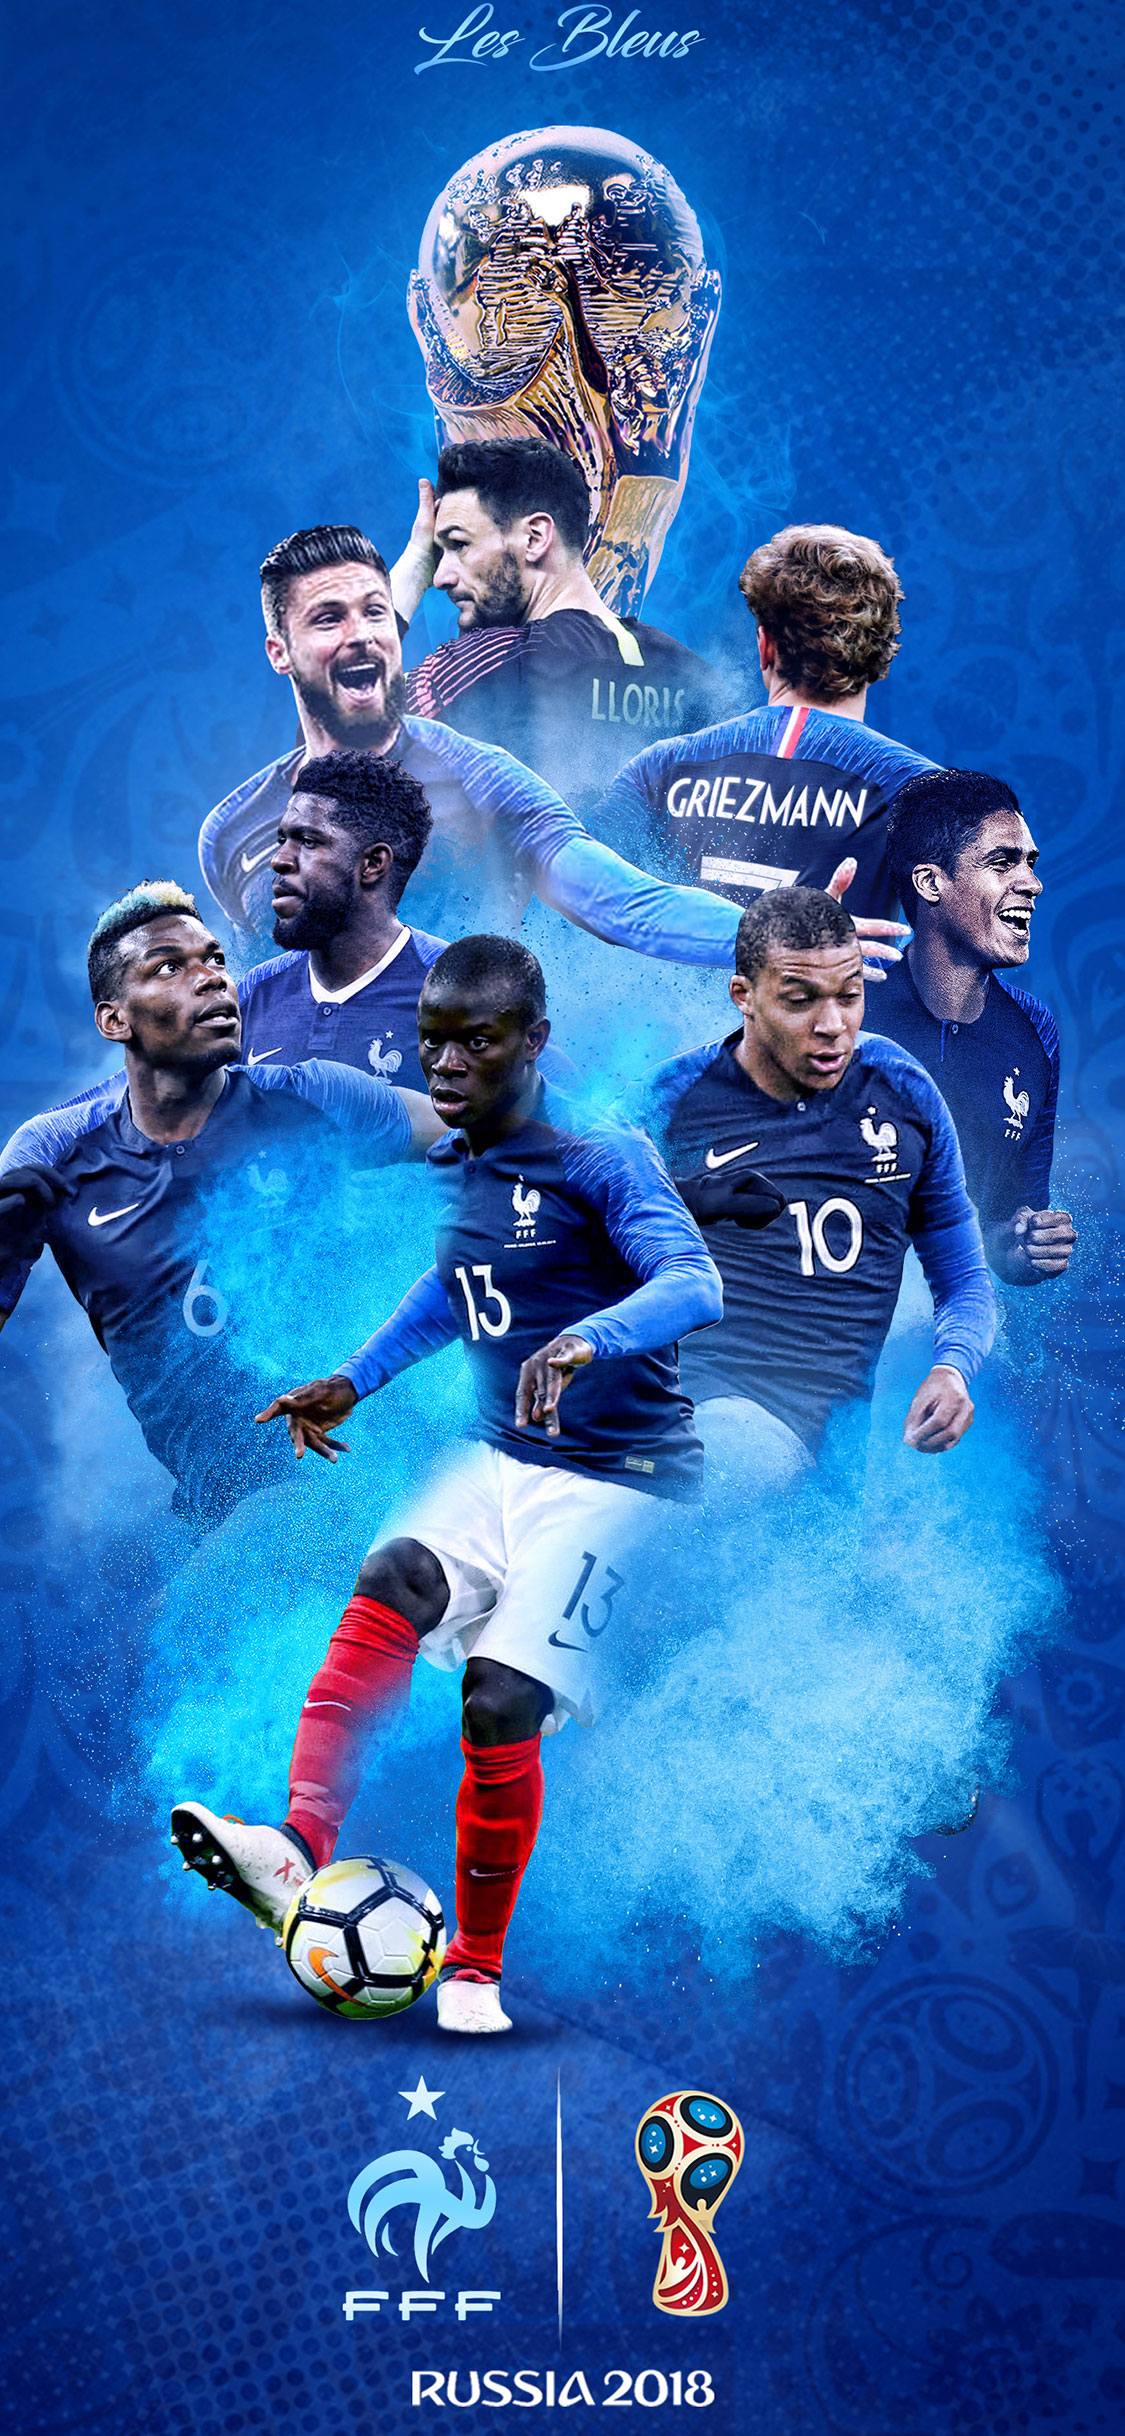 Girl Wallpaper For Iphone 6 Plus 2018 Fifa World Cup Wallpaper For Iphone X 8 7 6 Free